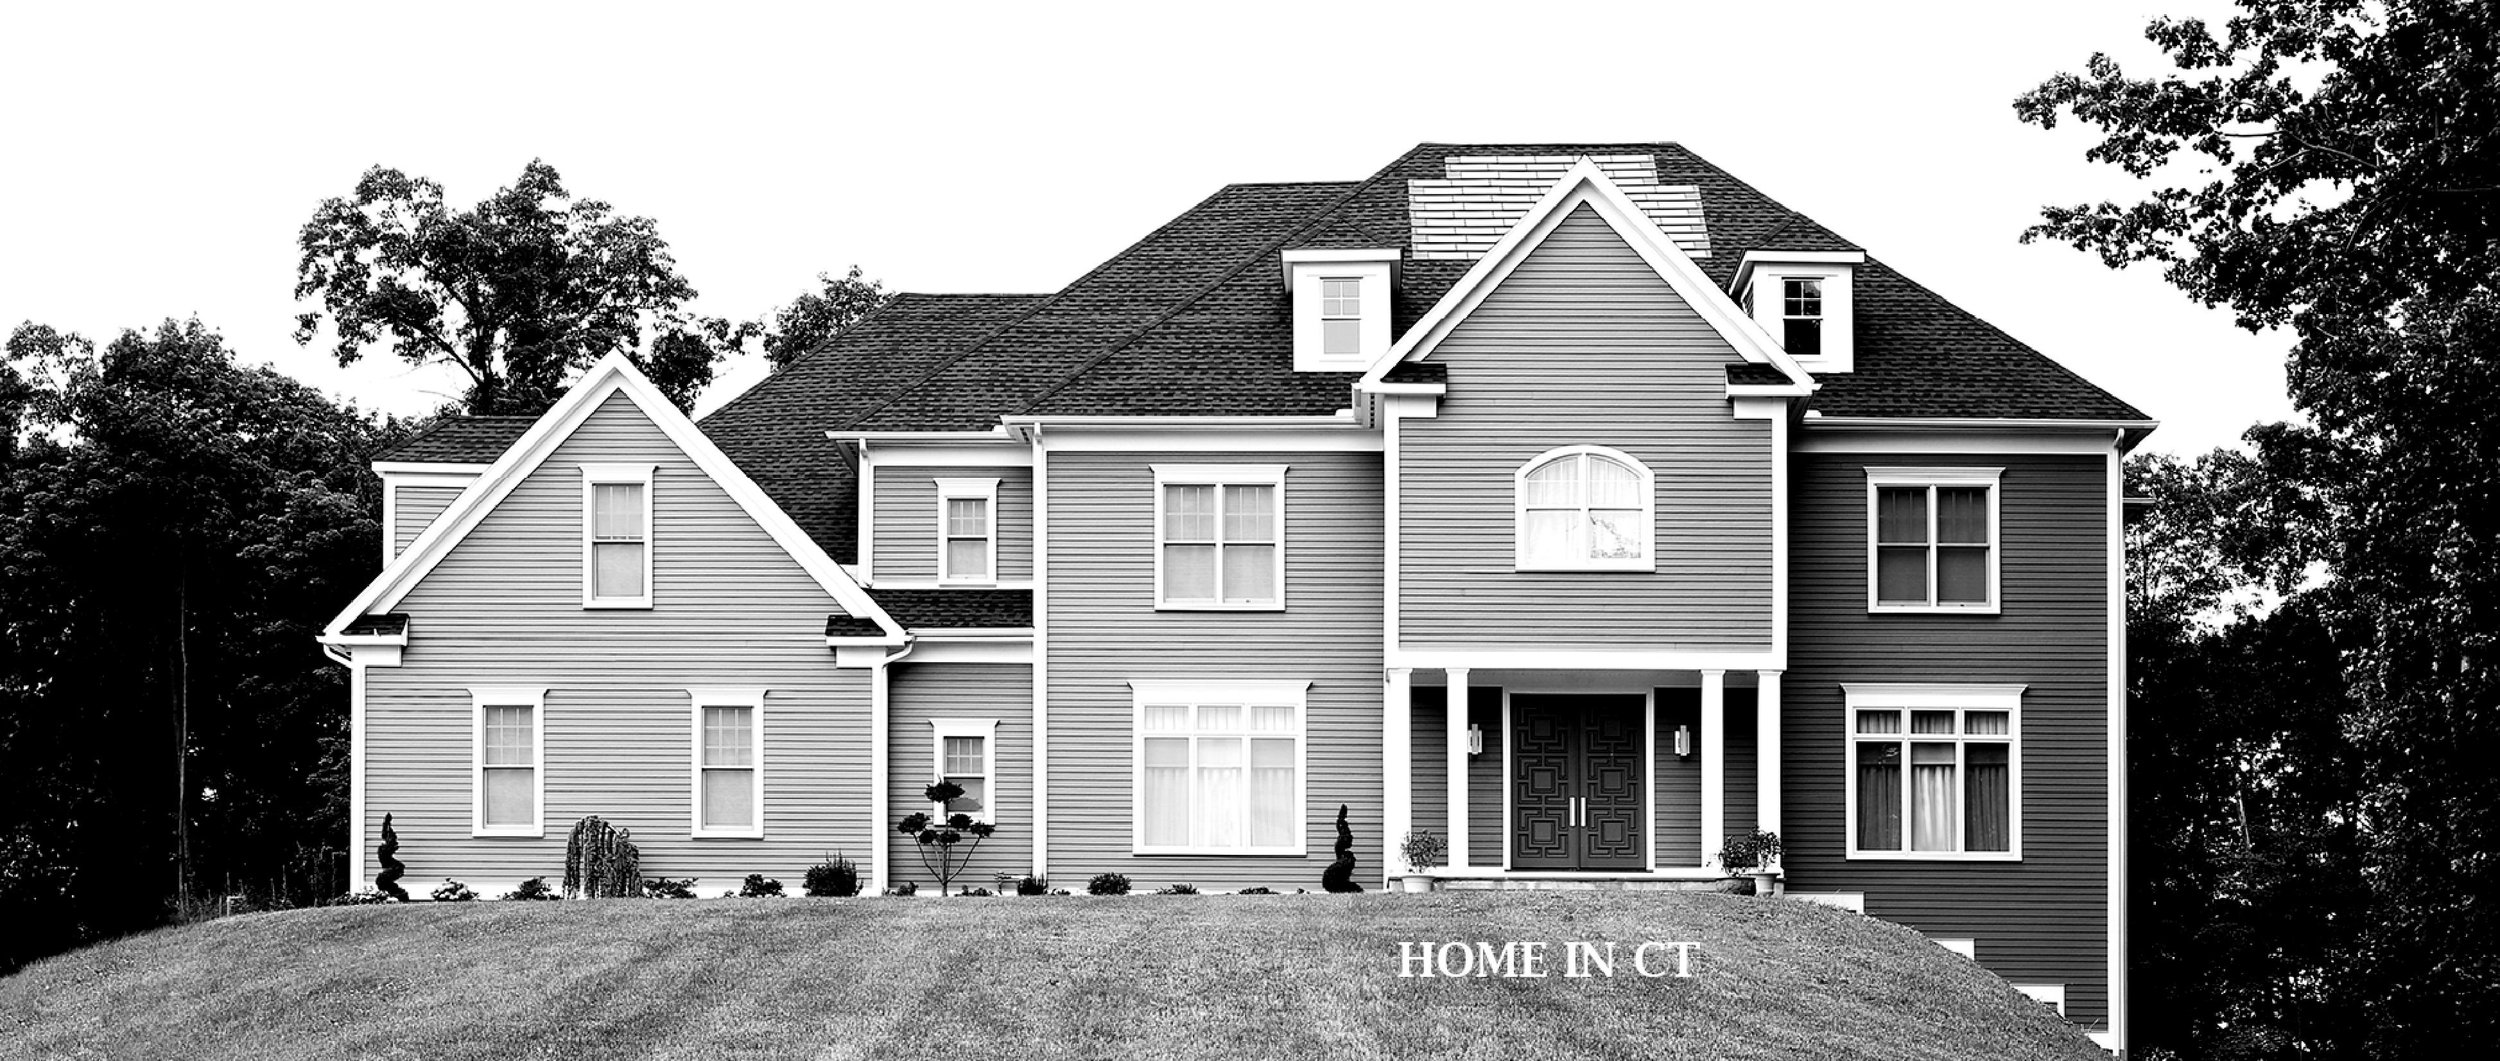 HOME IN CT_000001.jpg